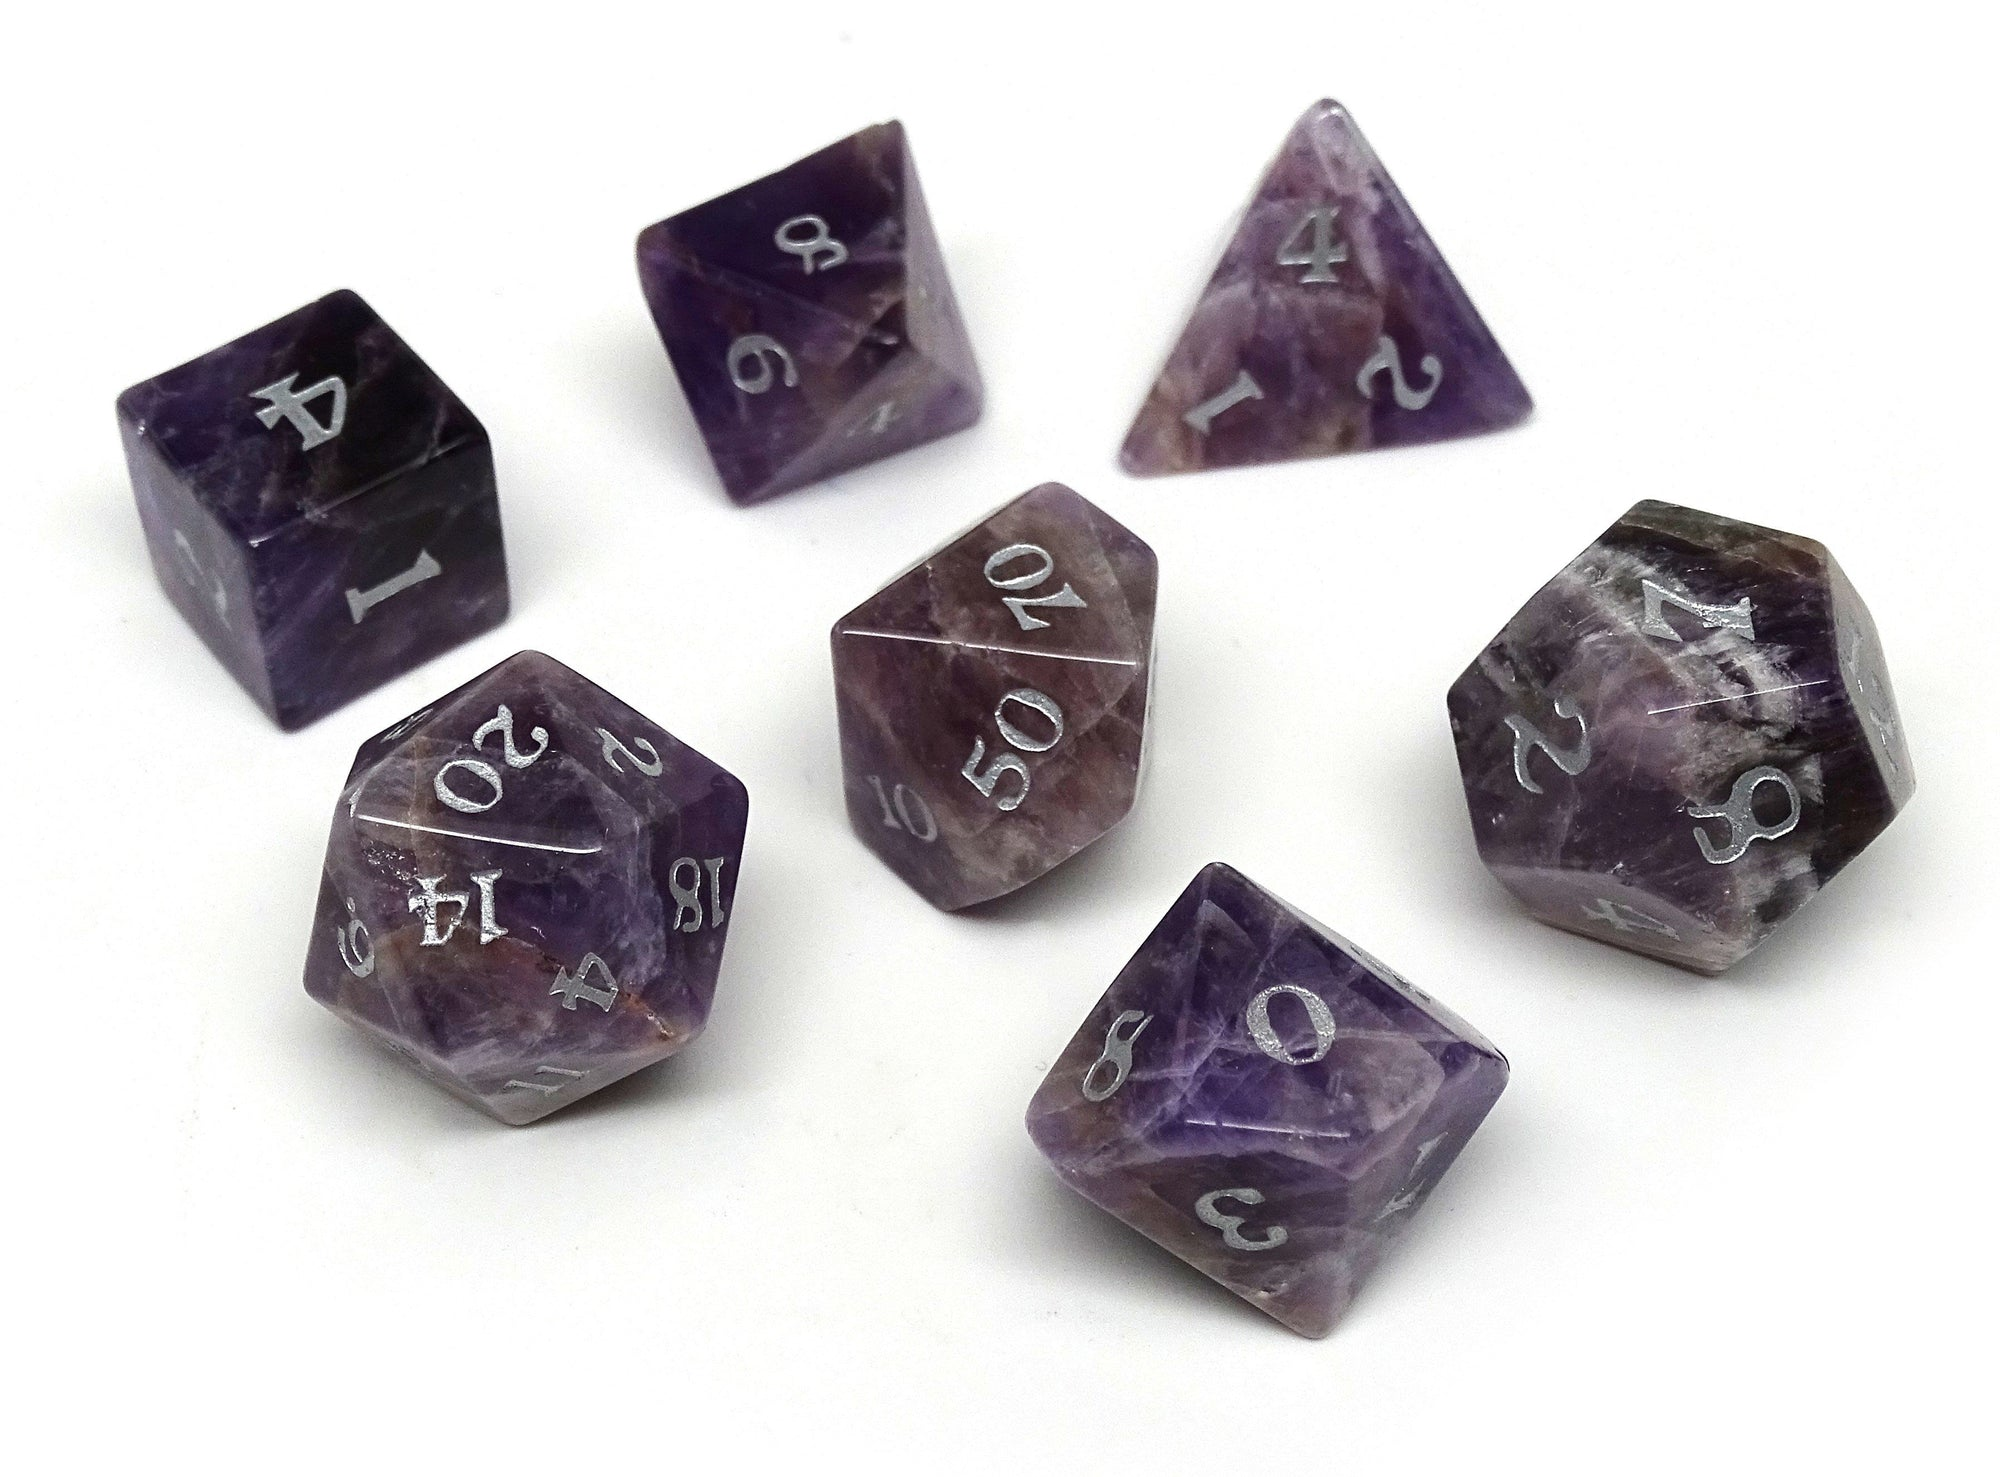 Stone Dice Collection - Amethyst - Signature Font